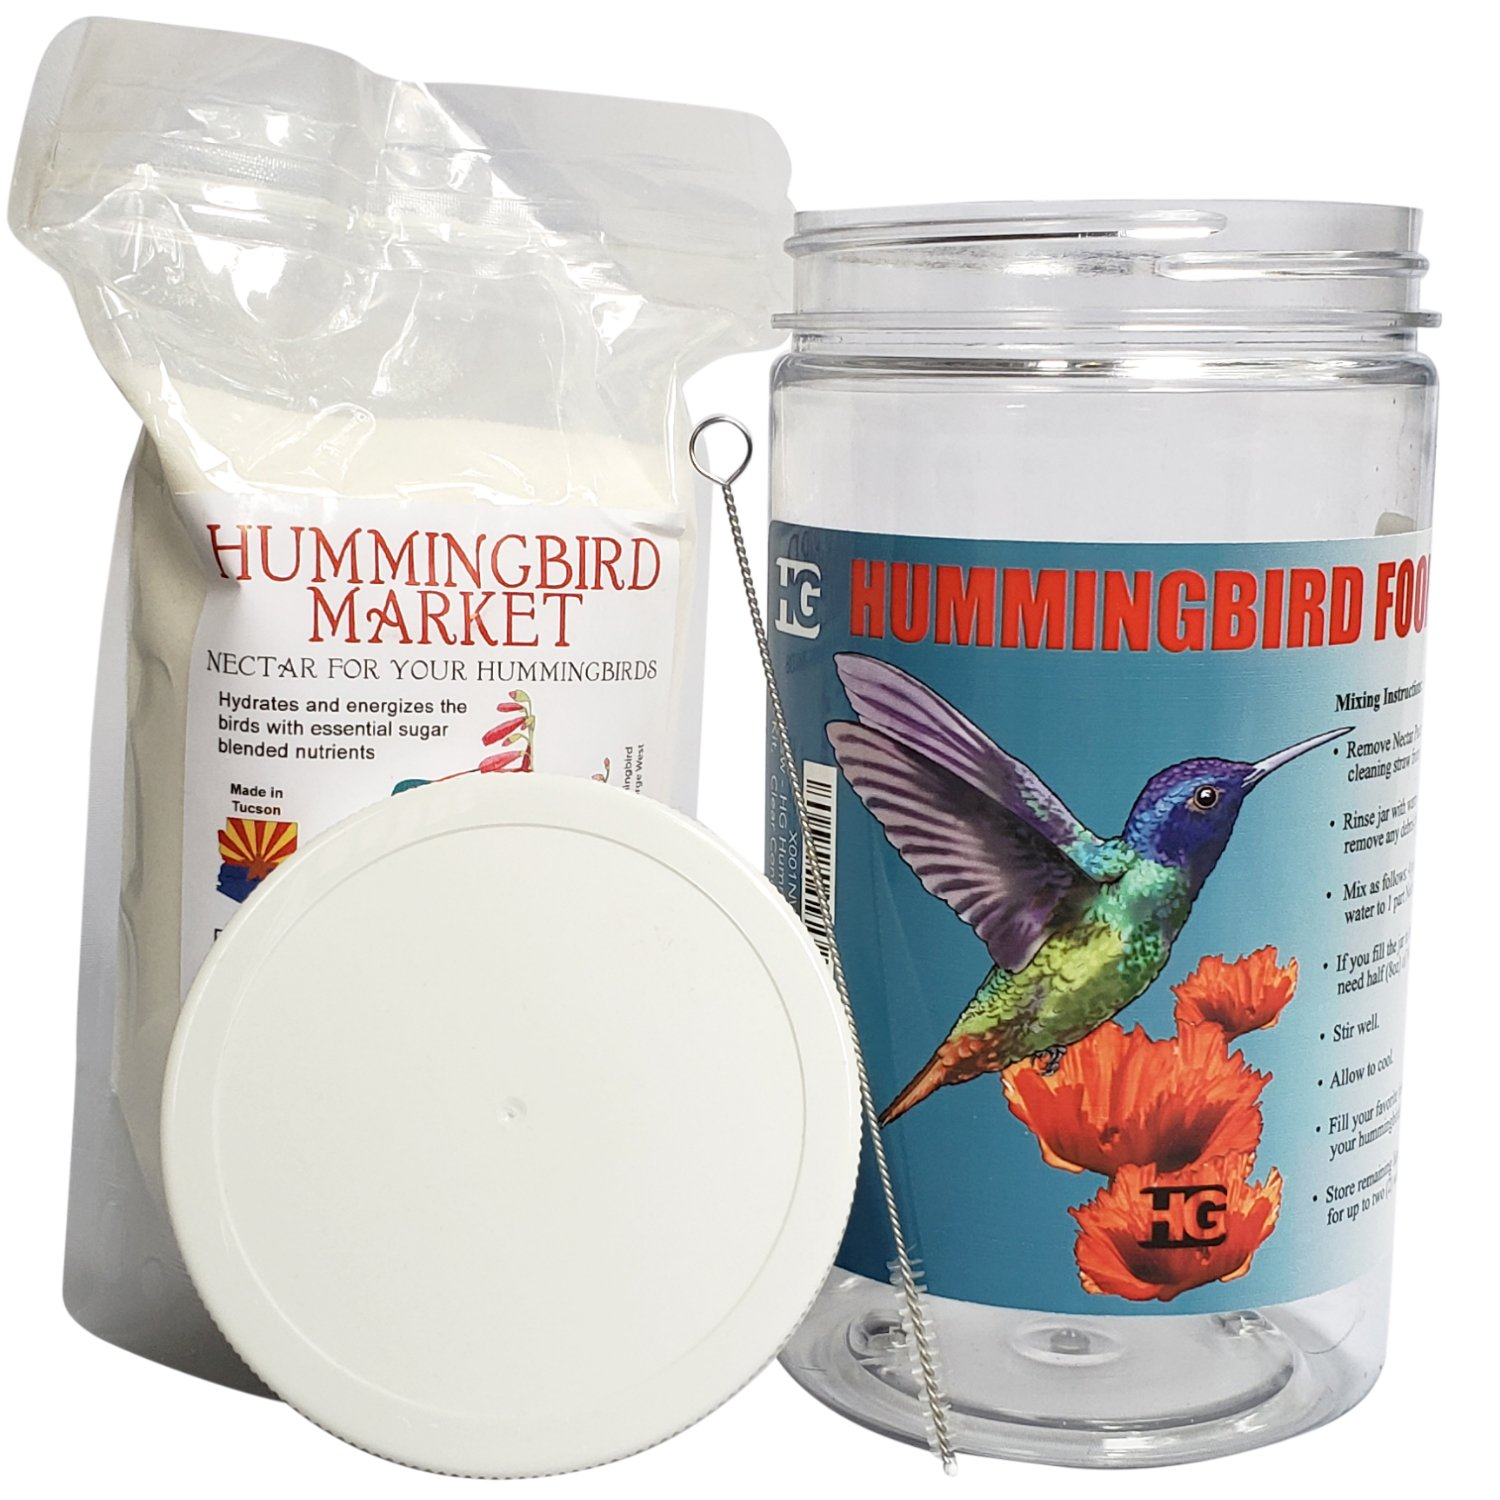 Happy Gross HG Hummingbird Nectar Kit, Clear Concentrate Hummingbird Food In A One Pound Bag, 32 Ounce Food Grade Bottle, And Hummingbird Feeder Brush Cleaner. All Natural Safe Hummingbird Nectar